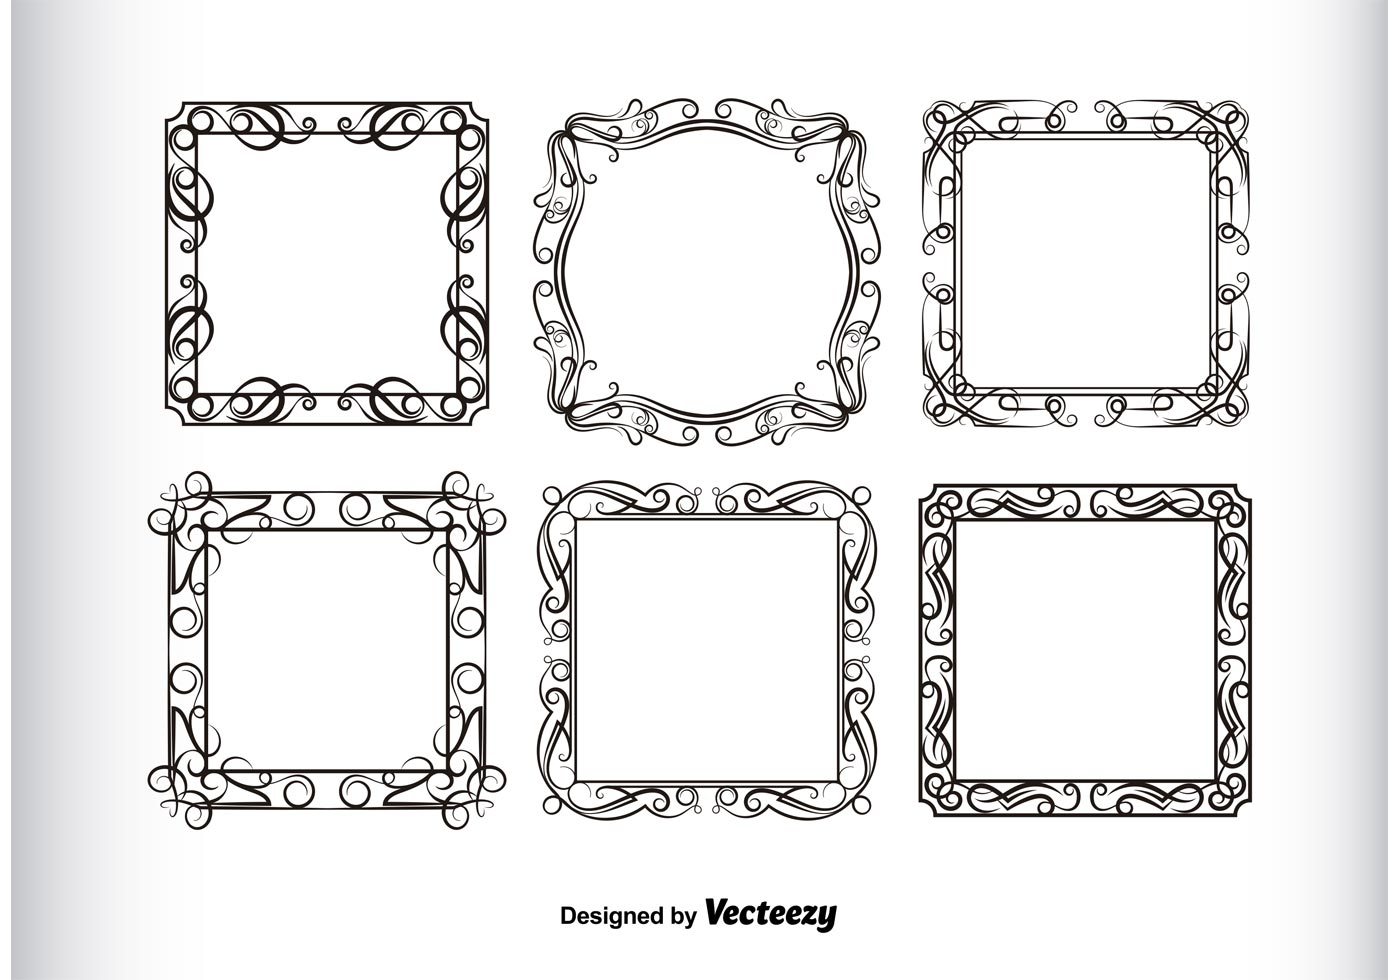 1838f40f5dcc Vintage Frames Silhouettes - Download Free Vector Art